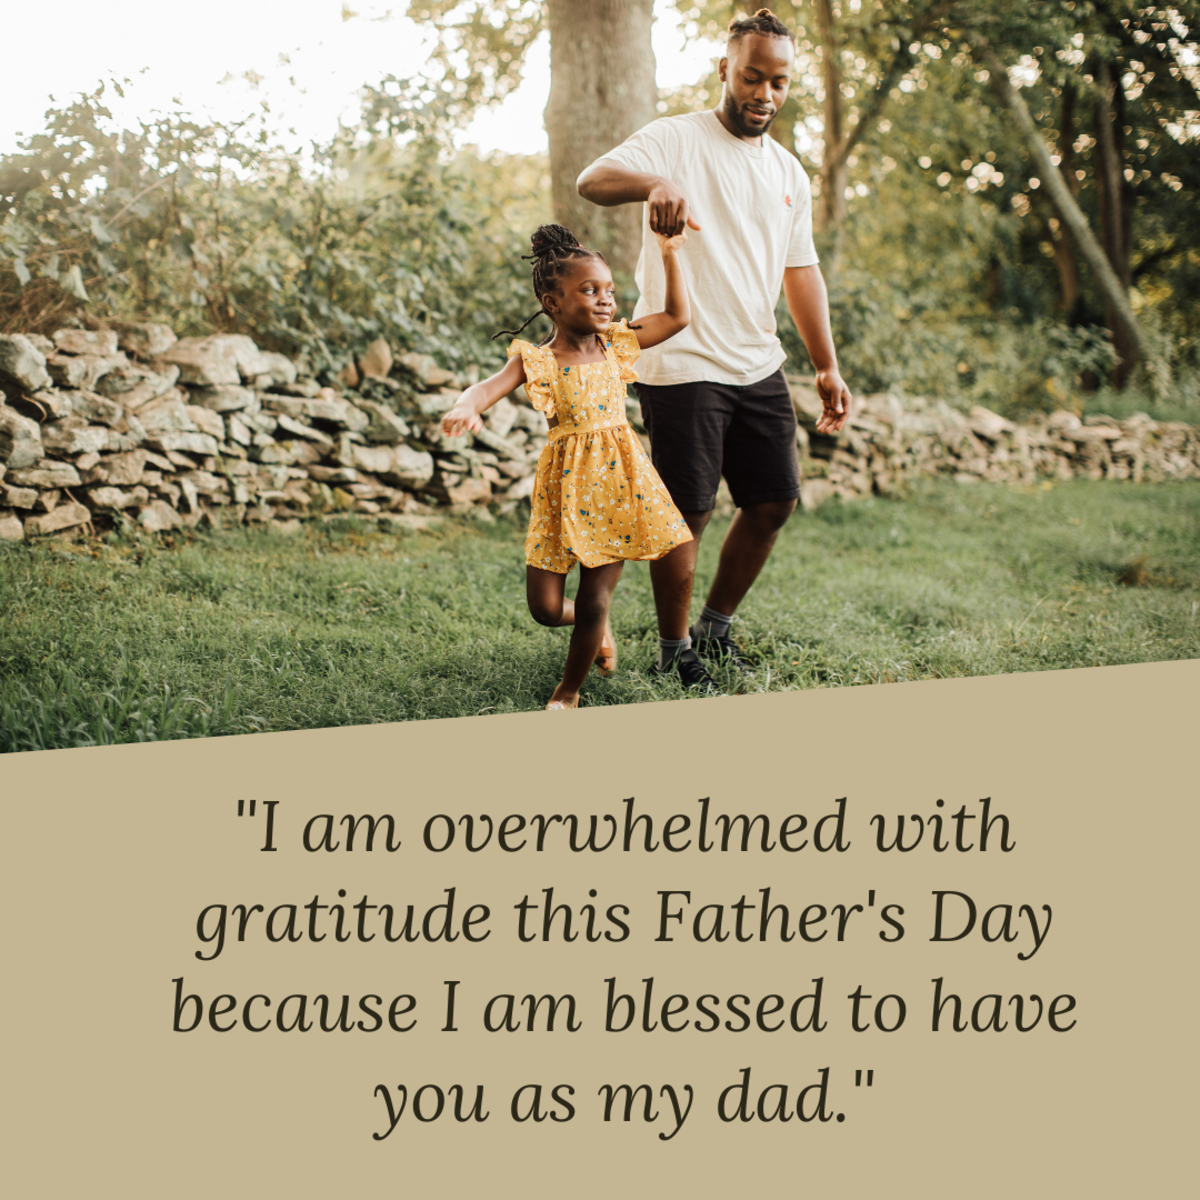 On Father's Day, tell your dad how much you appreciate him.